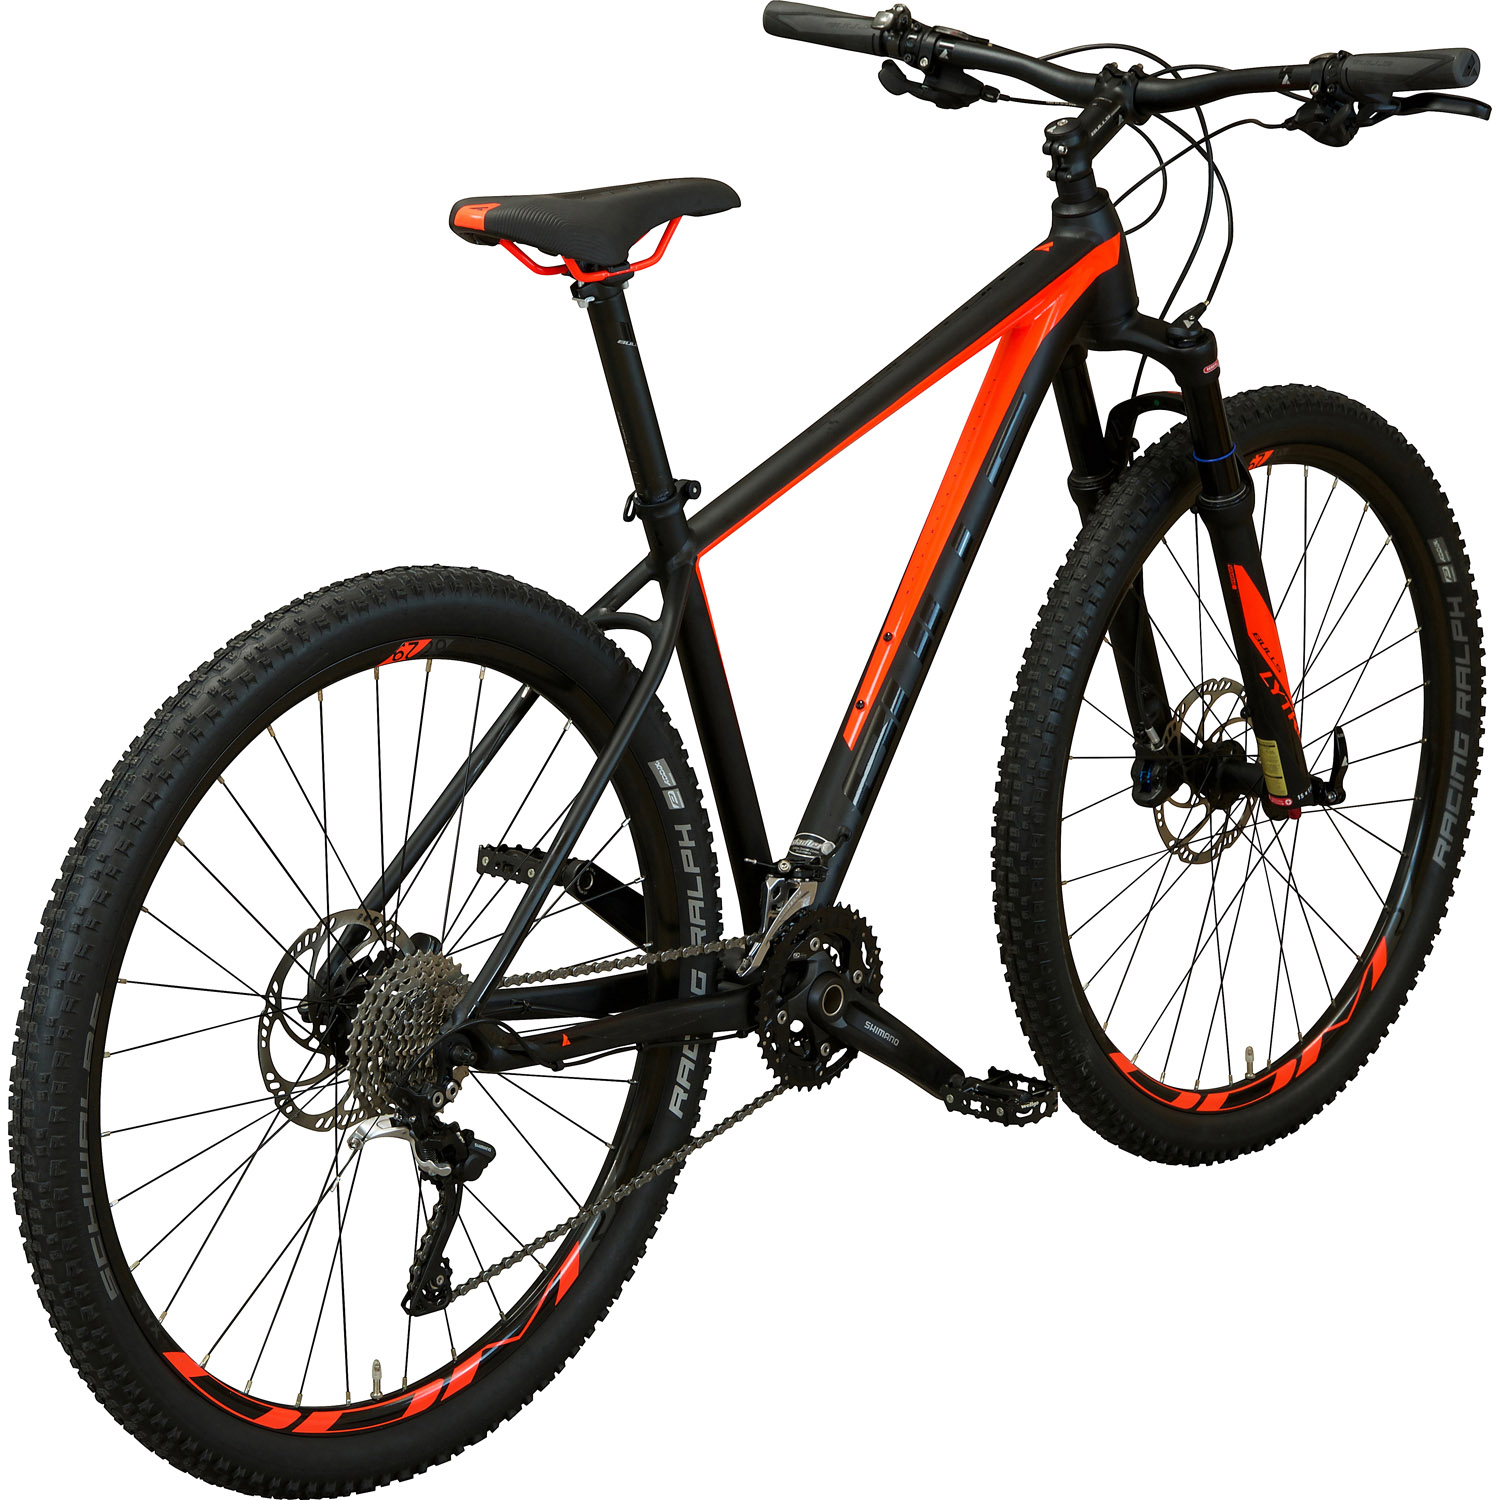 bulls copperhead 3 hardtail mountainbike 29 zoll 61 cm. Black Bedroom Furniture Sets. Home Design Ideas